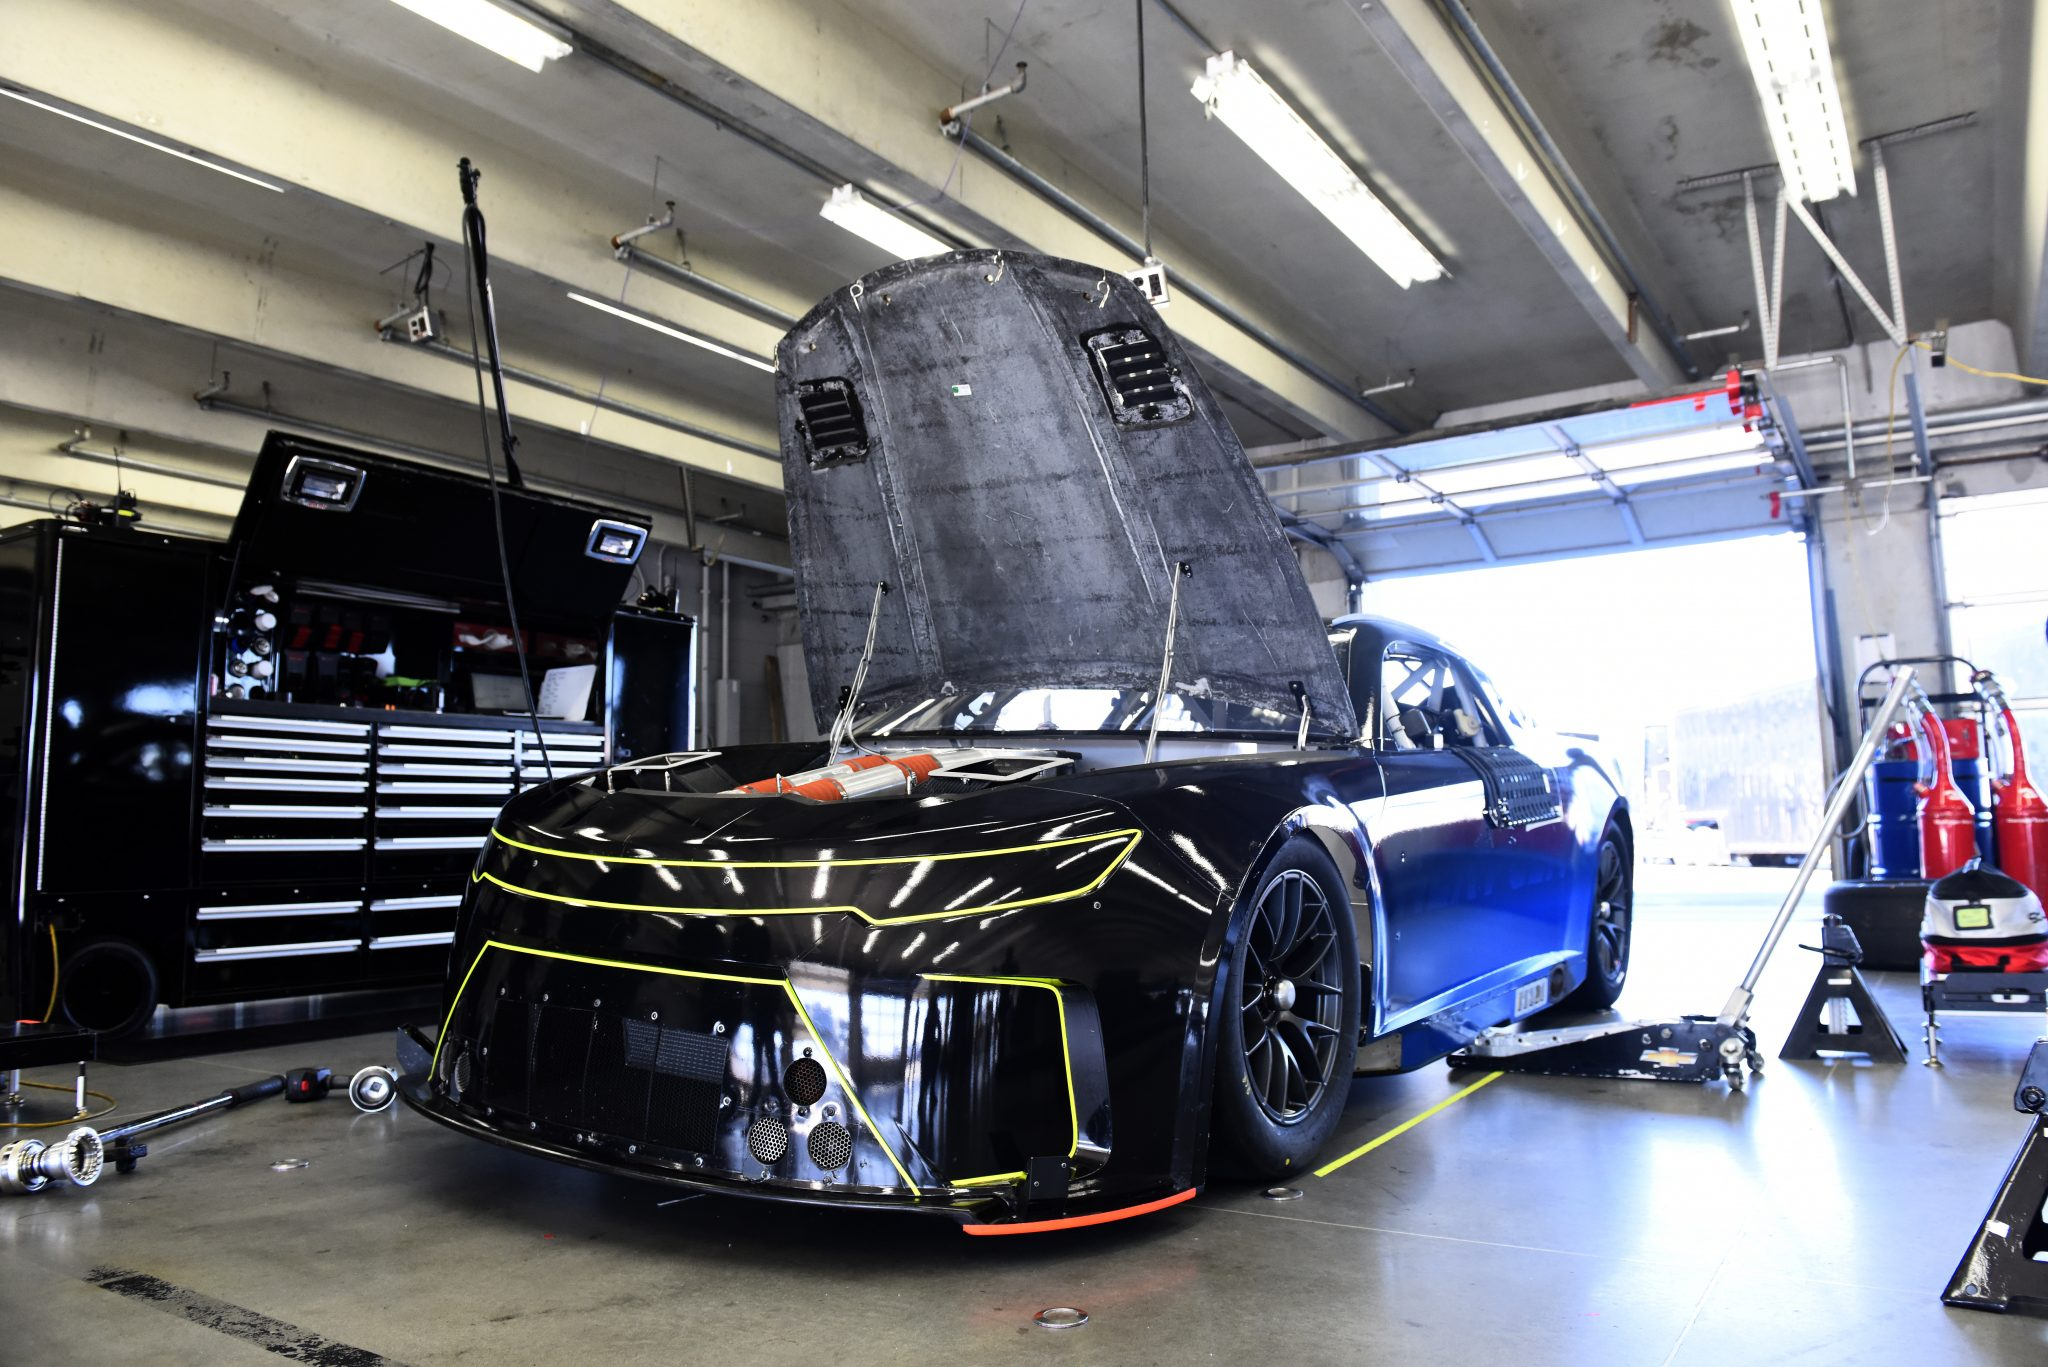 CONCORD, NORTH CAROLINA - NOVEMBER 16: The NASCAR Next Gen car waits in the garage area during the NASCAR Cup Series test at Charlotte Motor Speedway on November 16, 2020 in Concord, North Carolina. (Photo by Jared C. Tilton/Getty Images) | Getty Images